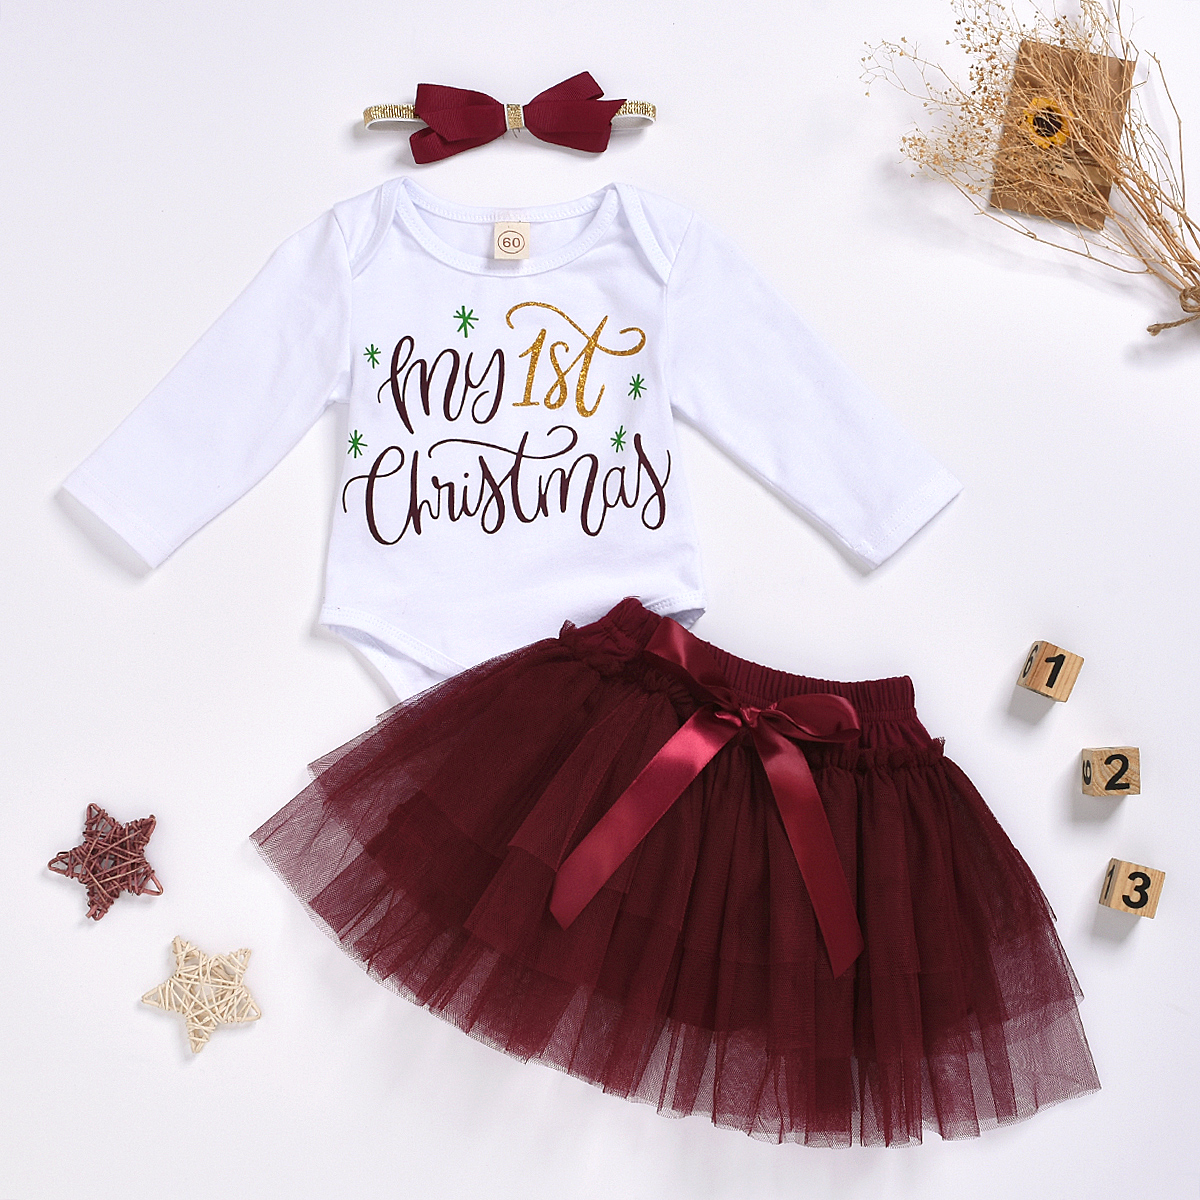 2019 My 1st Christmas Baby Girls Party Outfits Tops Romper+Tutu Skirt Clothes UK